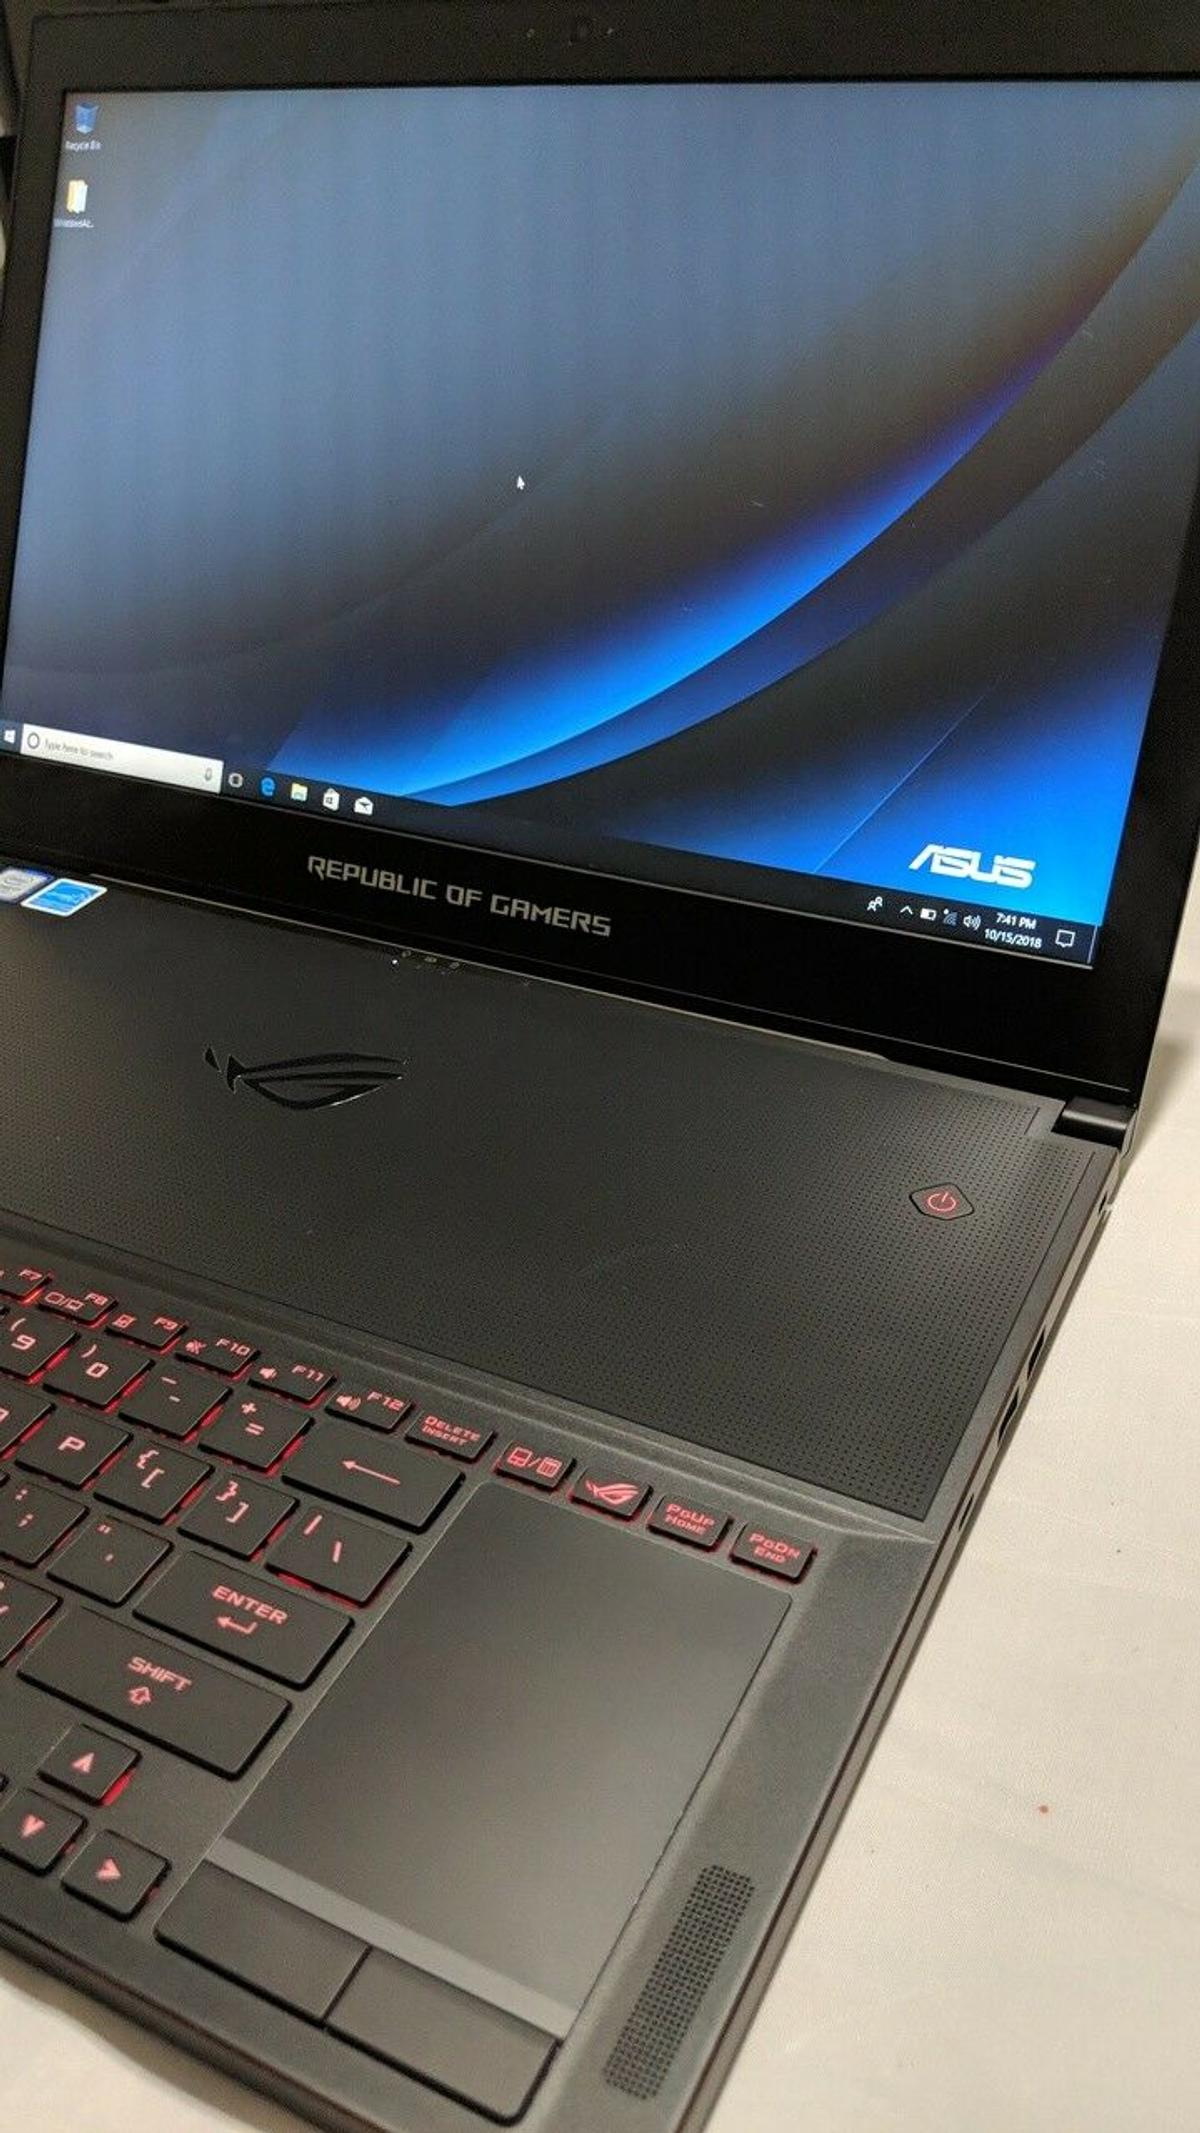 Asus ROG Zephyrus GTX 1080 Laptop in PA34 Oban for £380 00 for sale